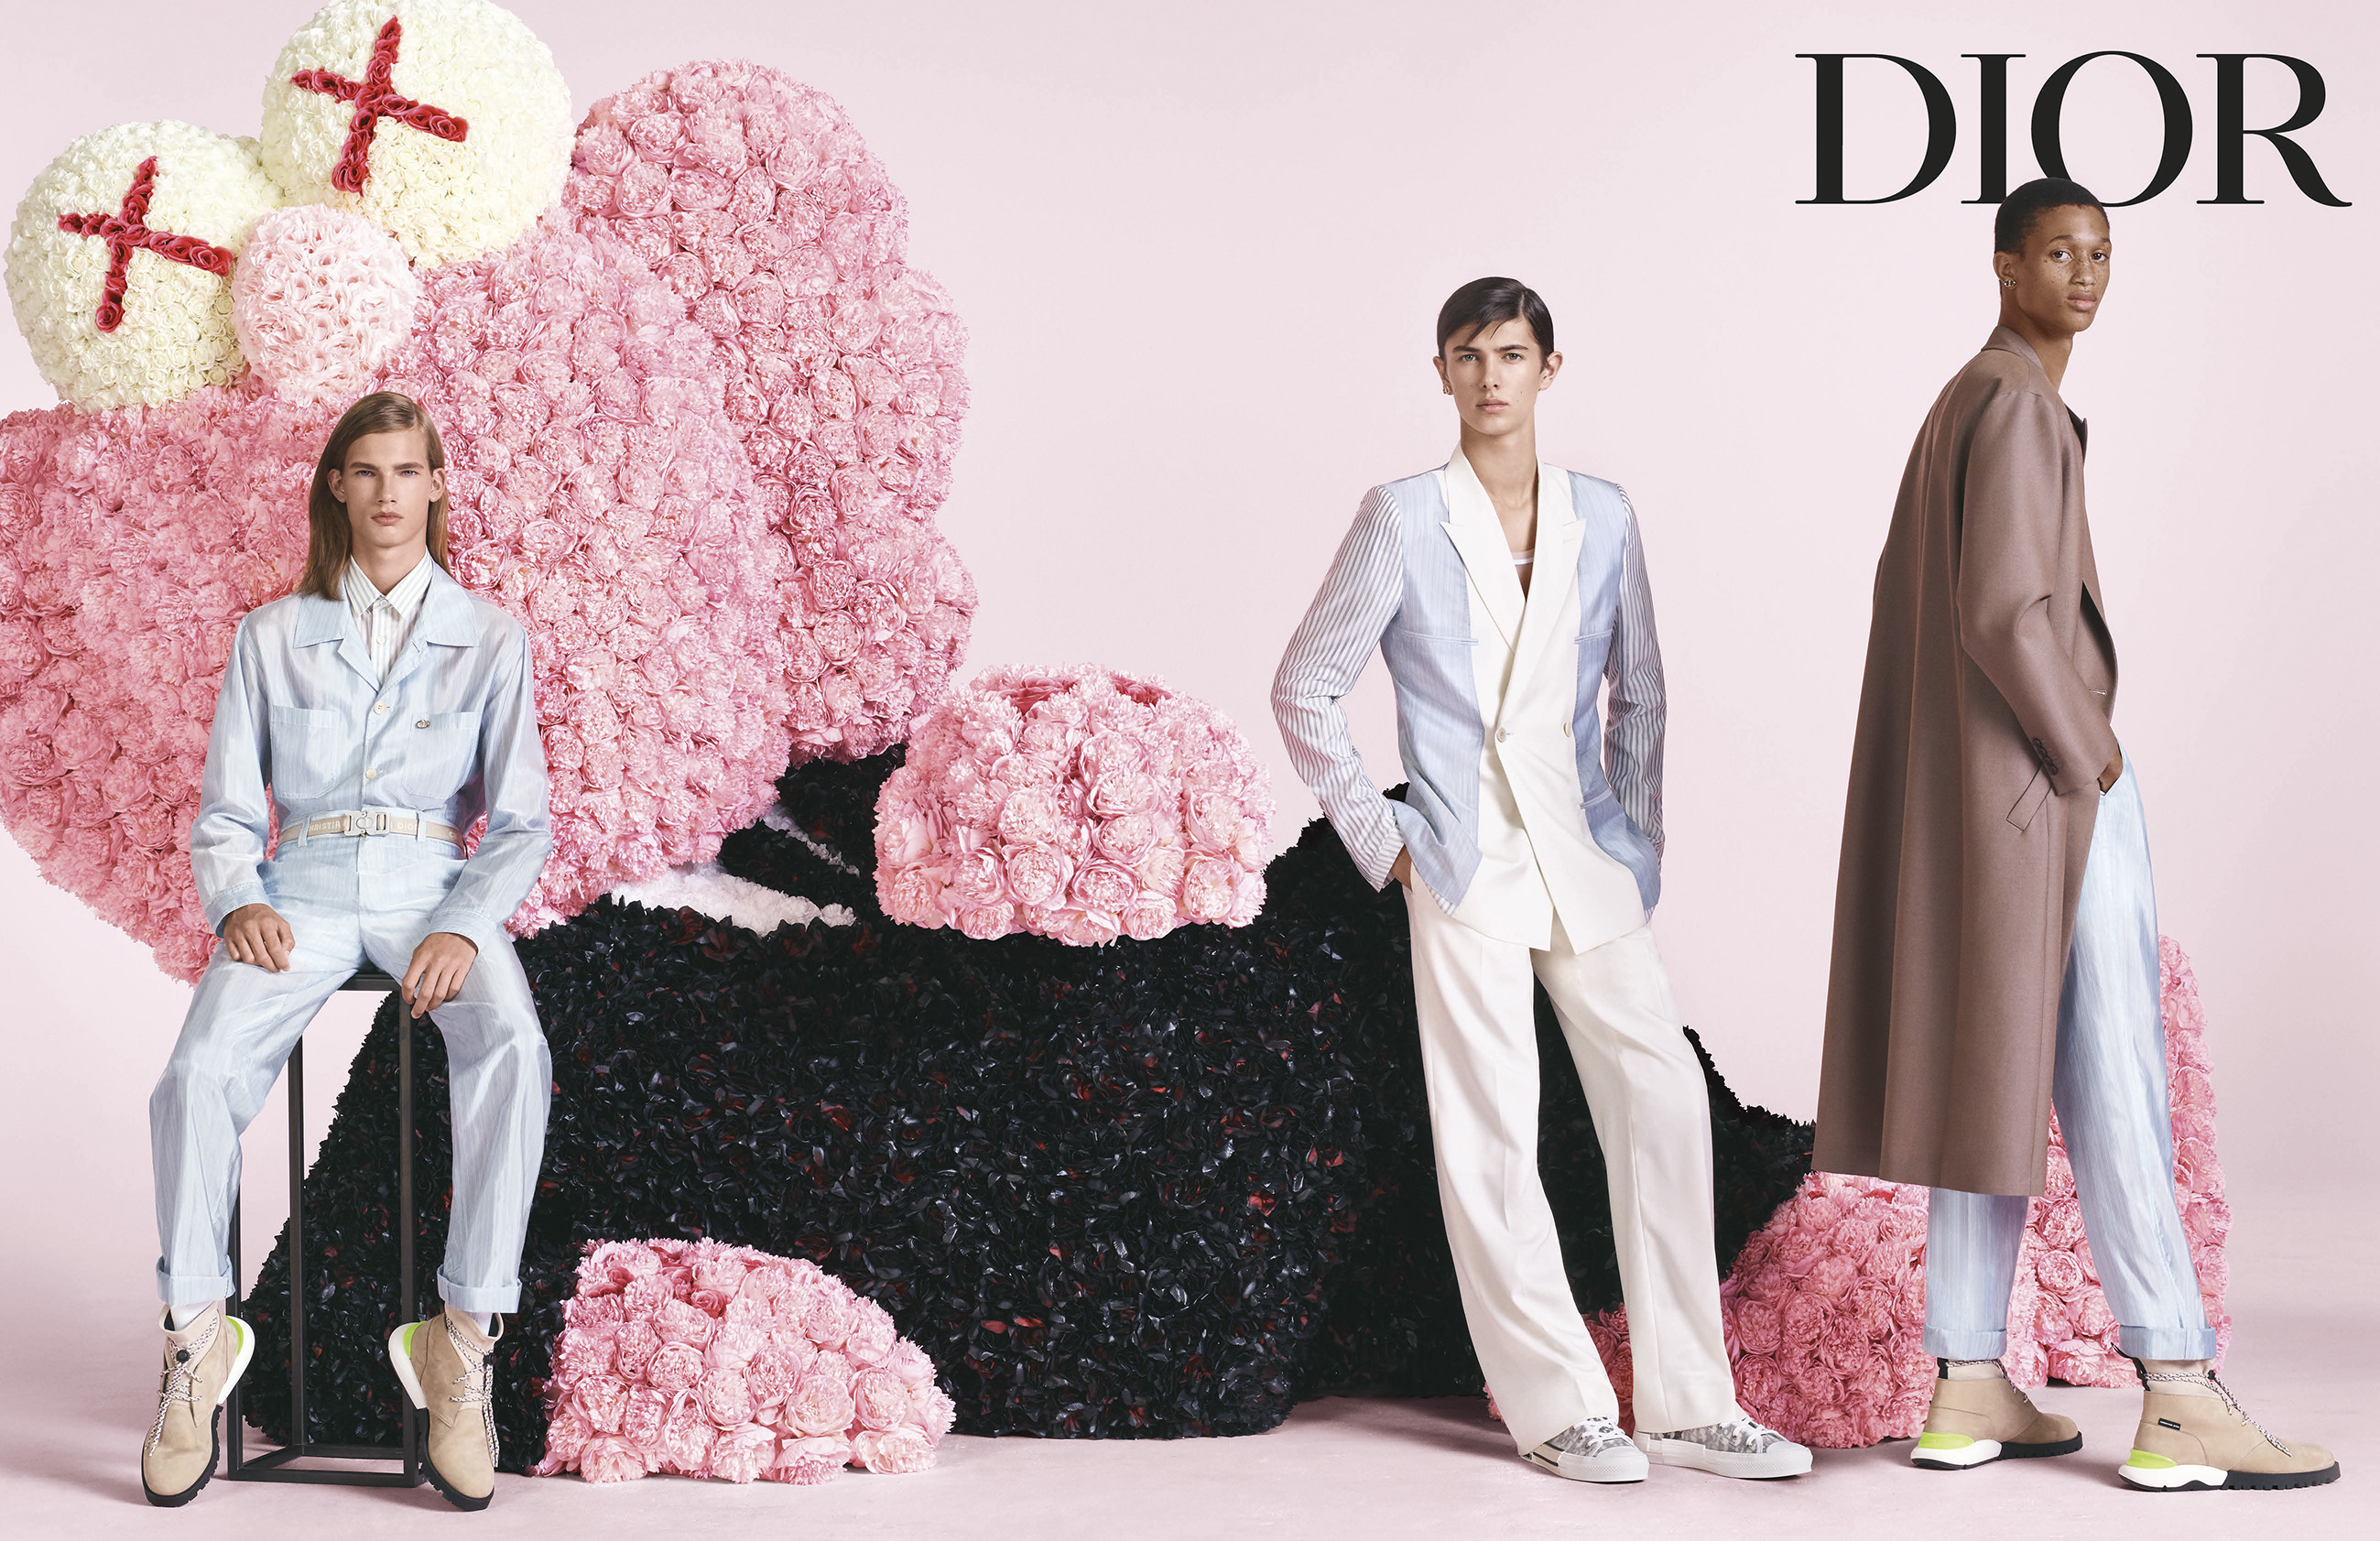 Dior Men's Spring 2019 Ad Campaign featuring KAWS by Steven Meisel